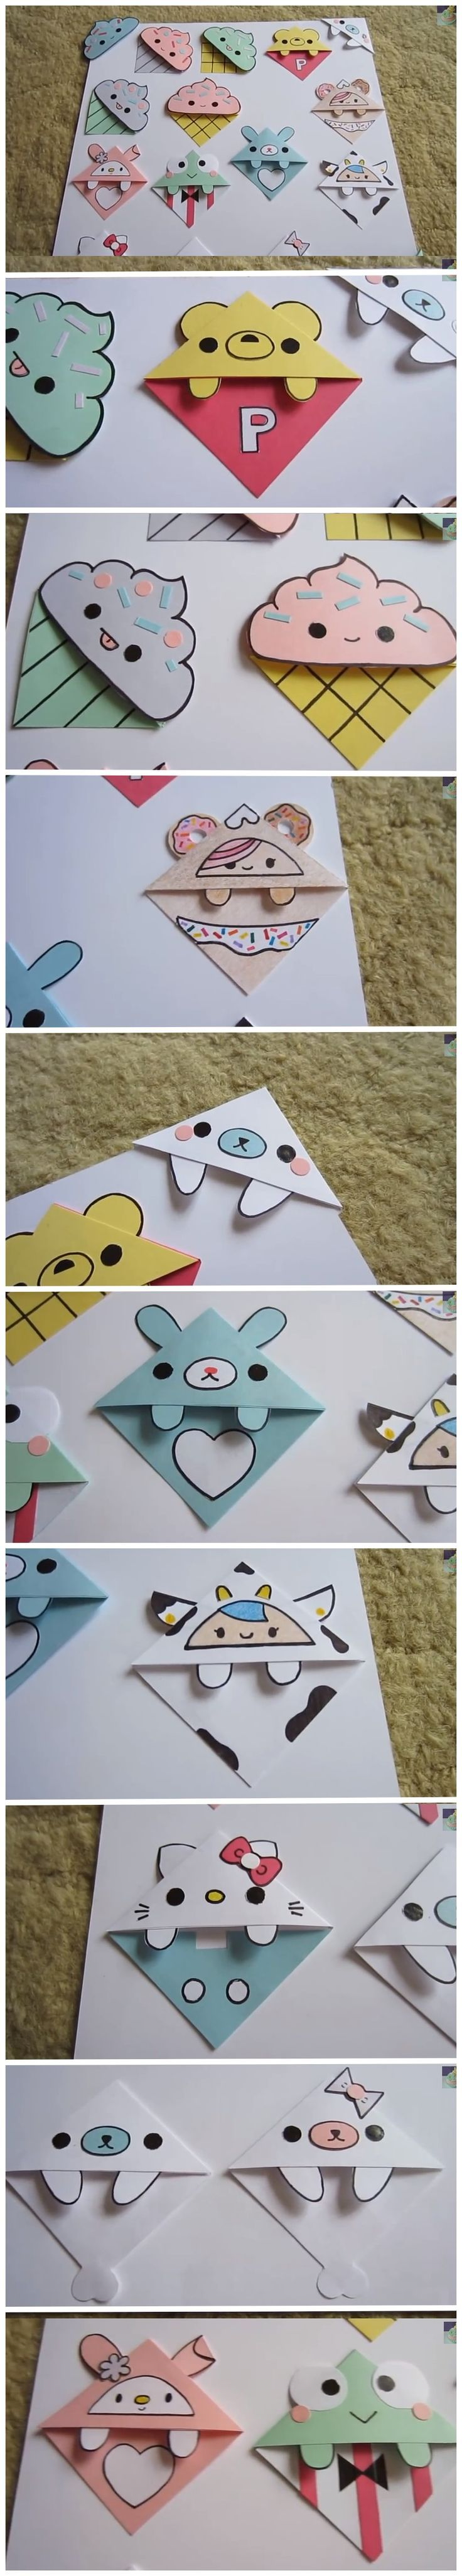 Corner Bookmark Collection (idea) | For more DIY paper craft ideas, visit our Pinterest Board: https://www.pinterest.com/makerskit/papercraft-diy-ideas/ Más